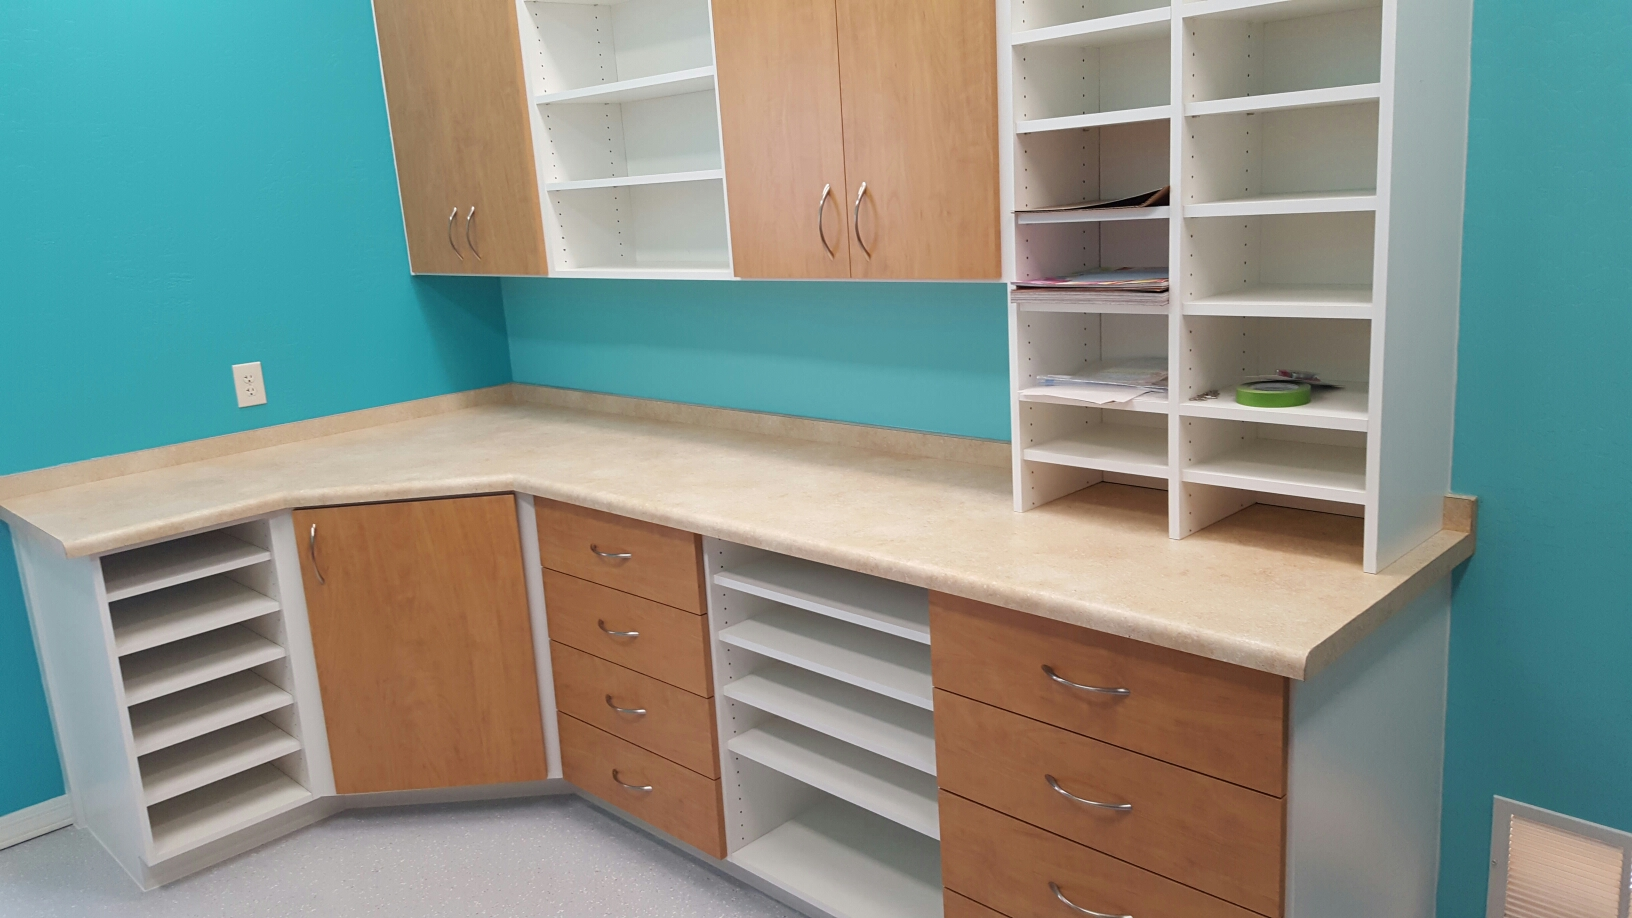 Space solutions garage cabinets custom closets phoenix for Craft stores in phoenix